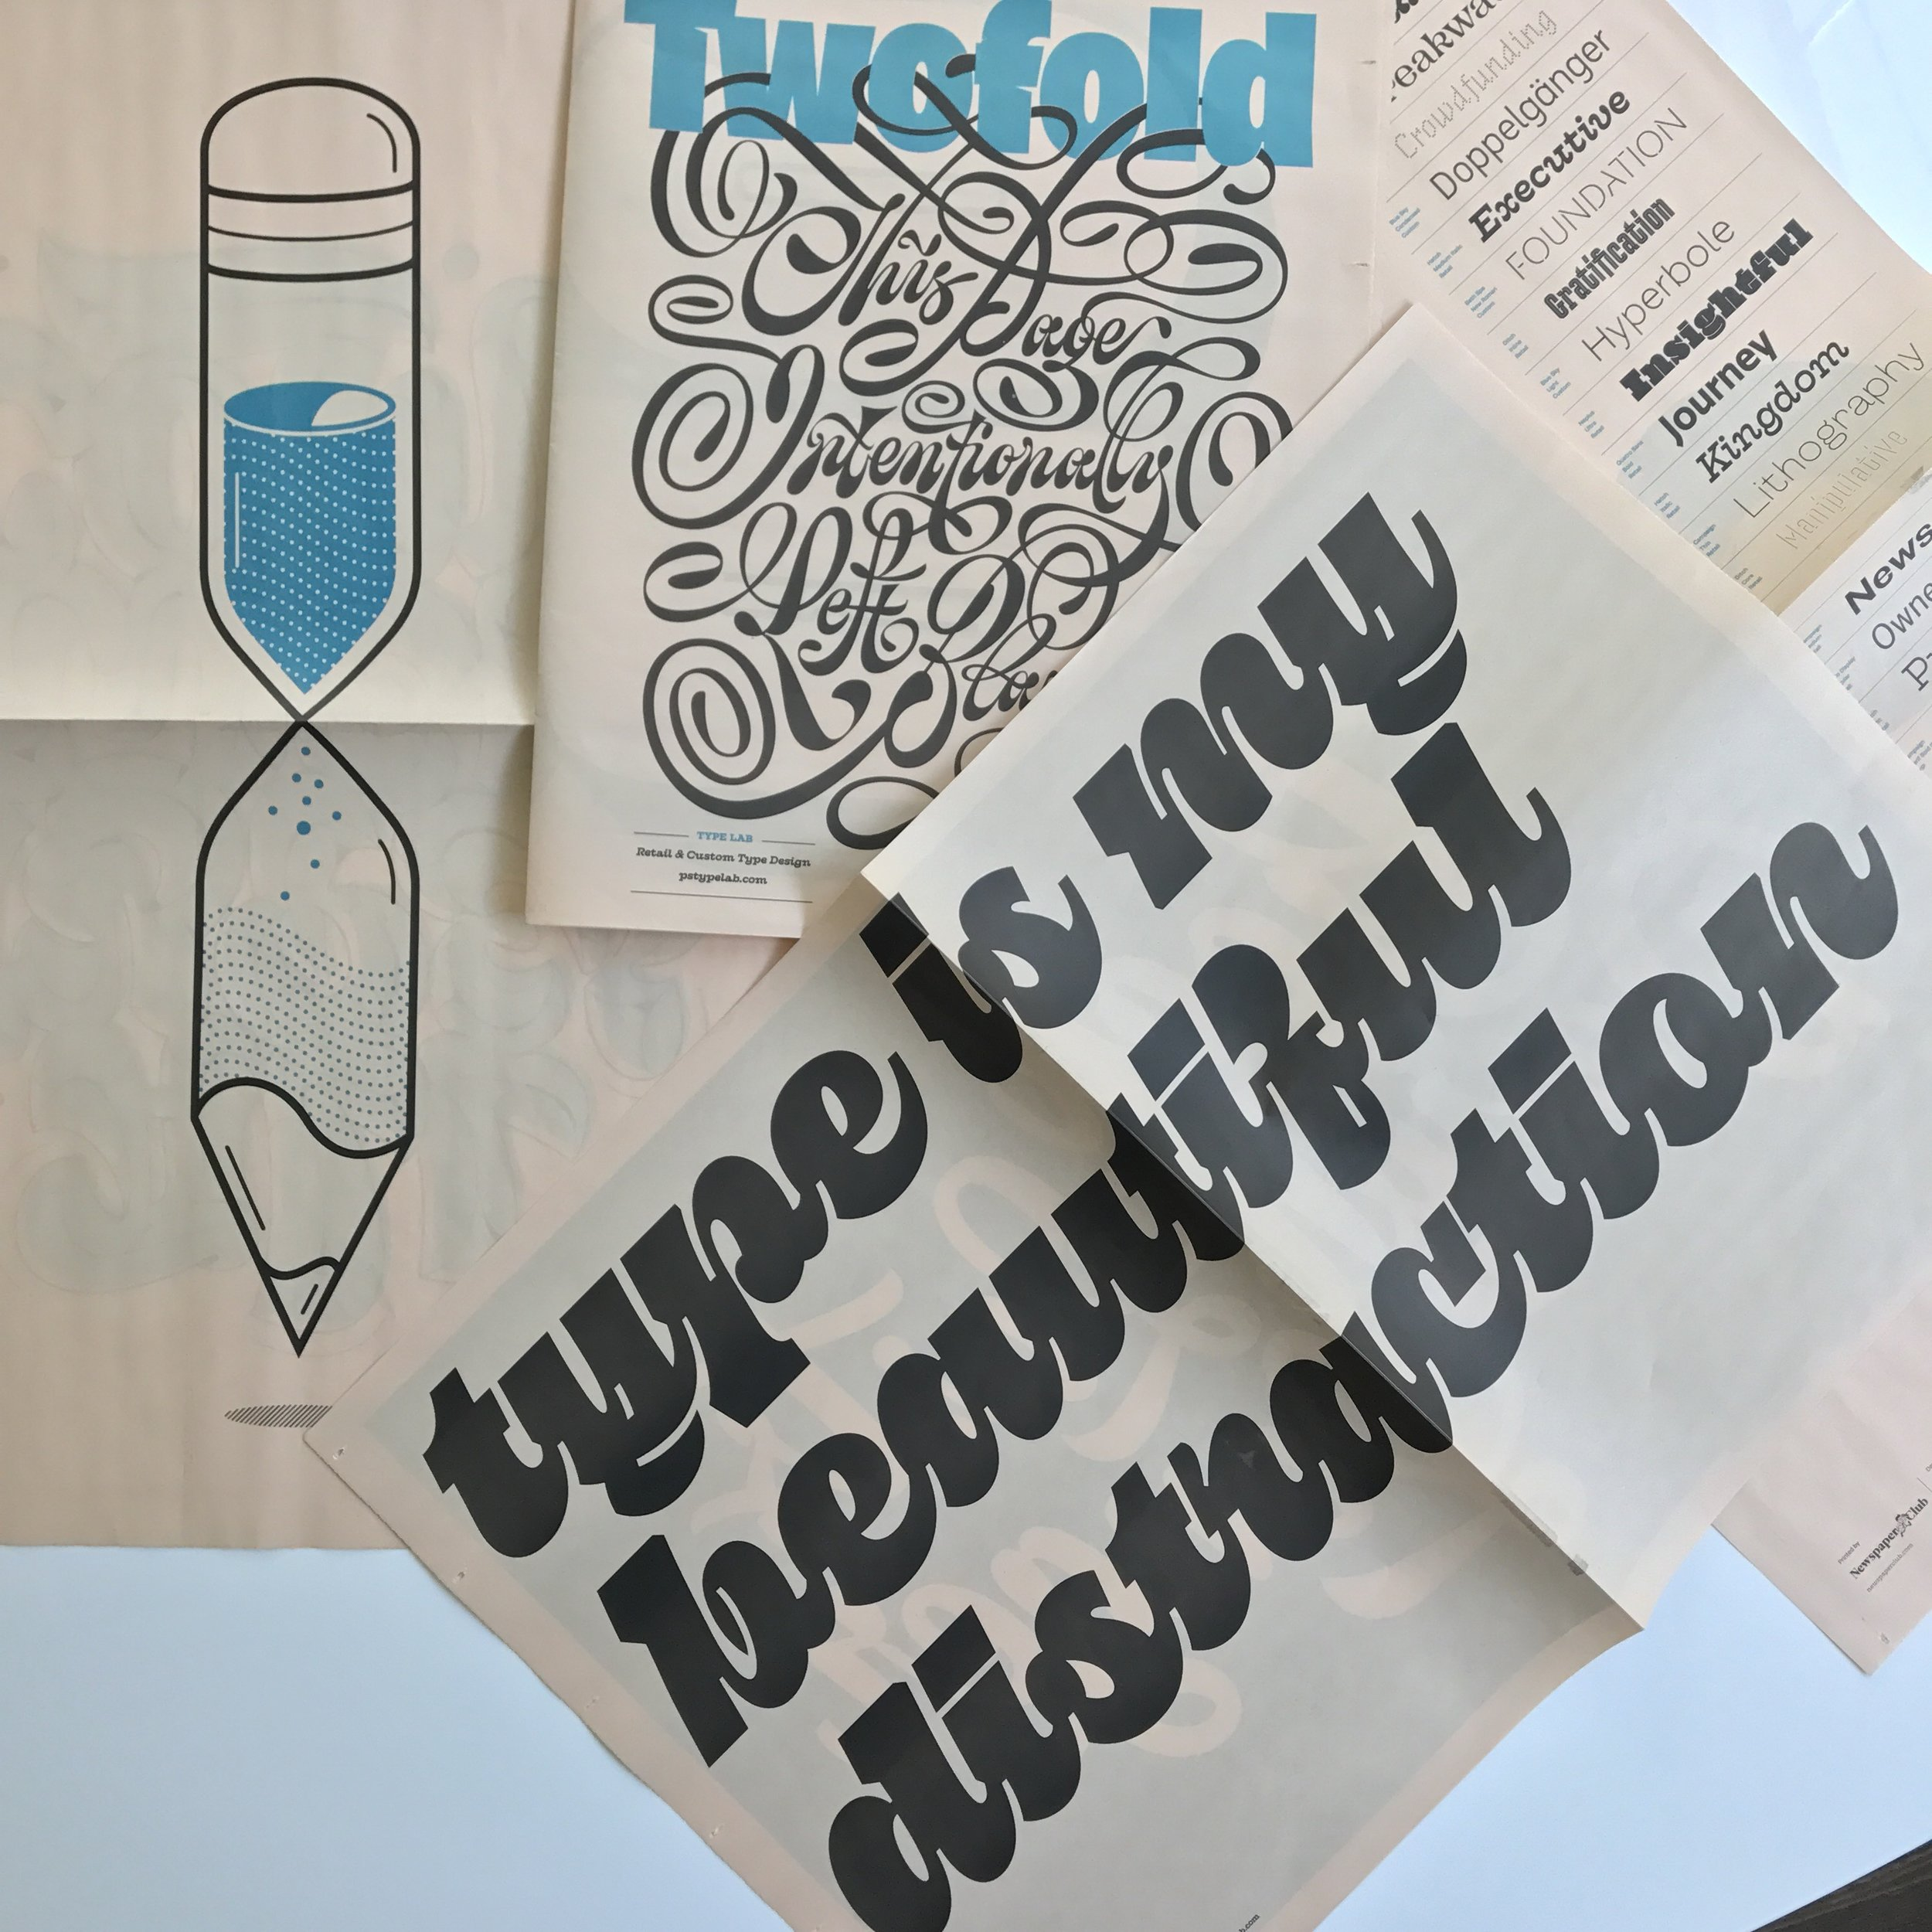 Pika used in Twofold - a type/lettering specimen printed on newspaper